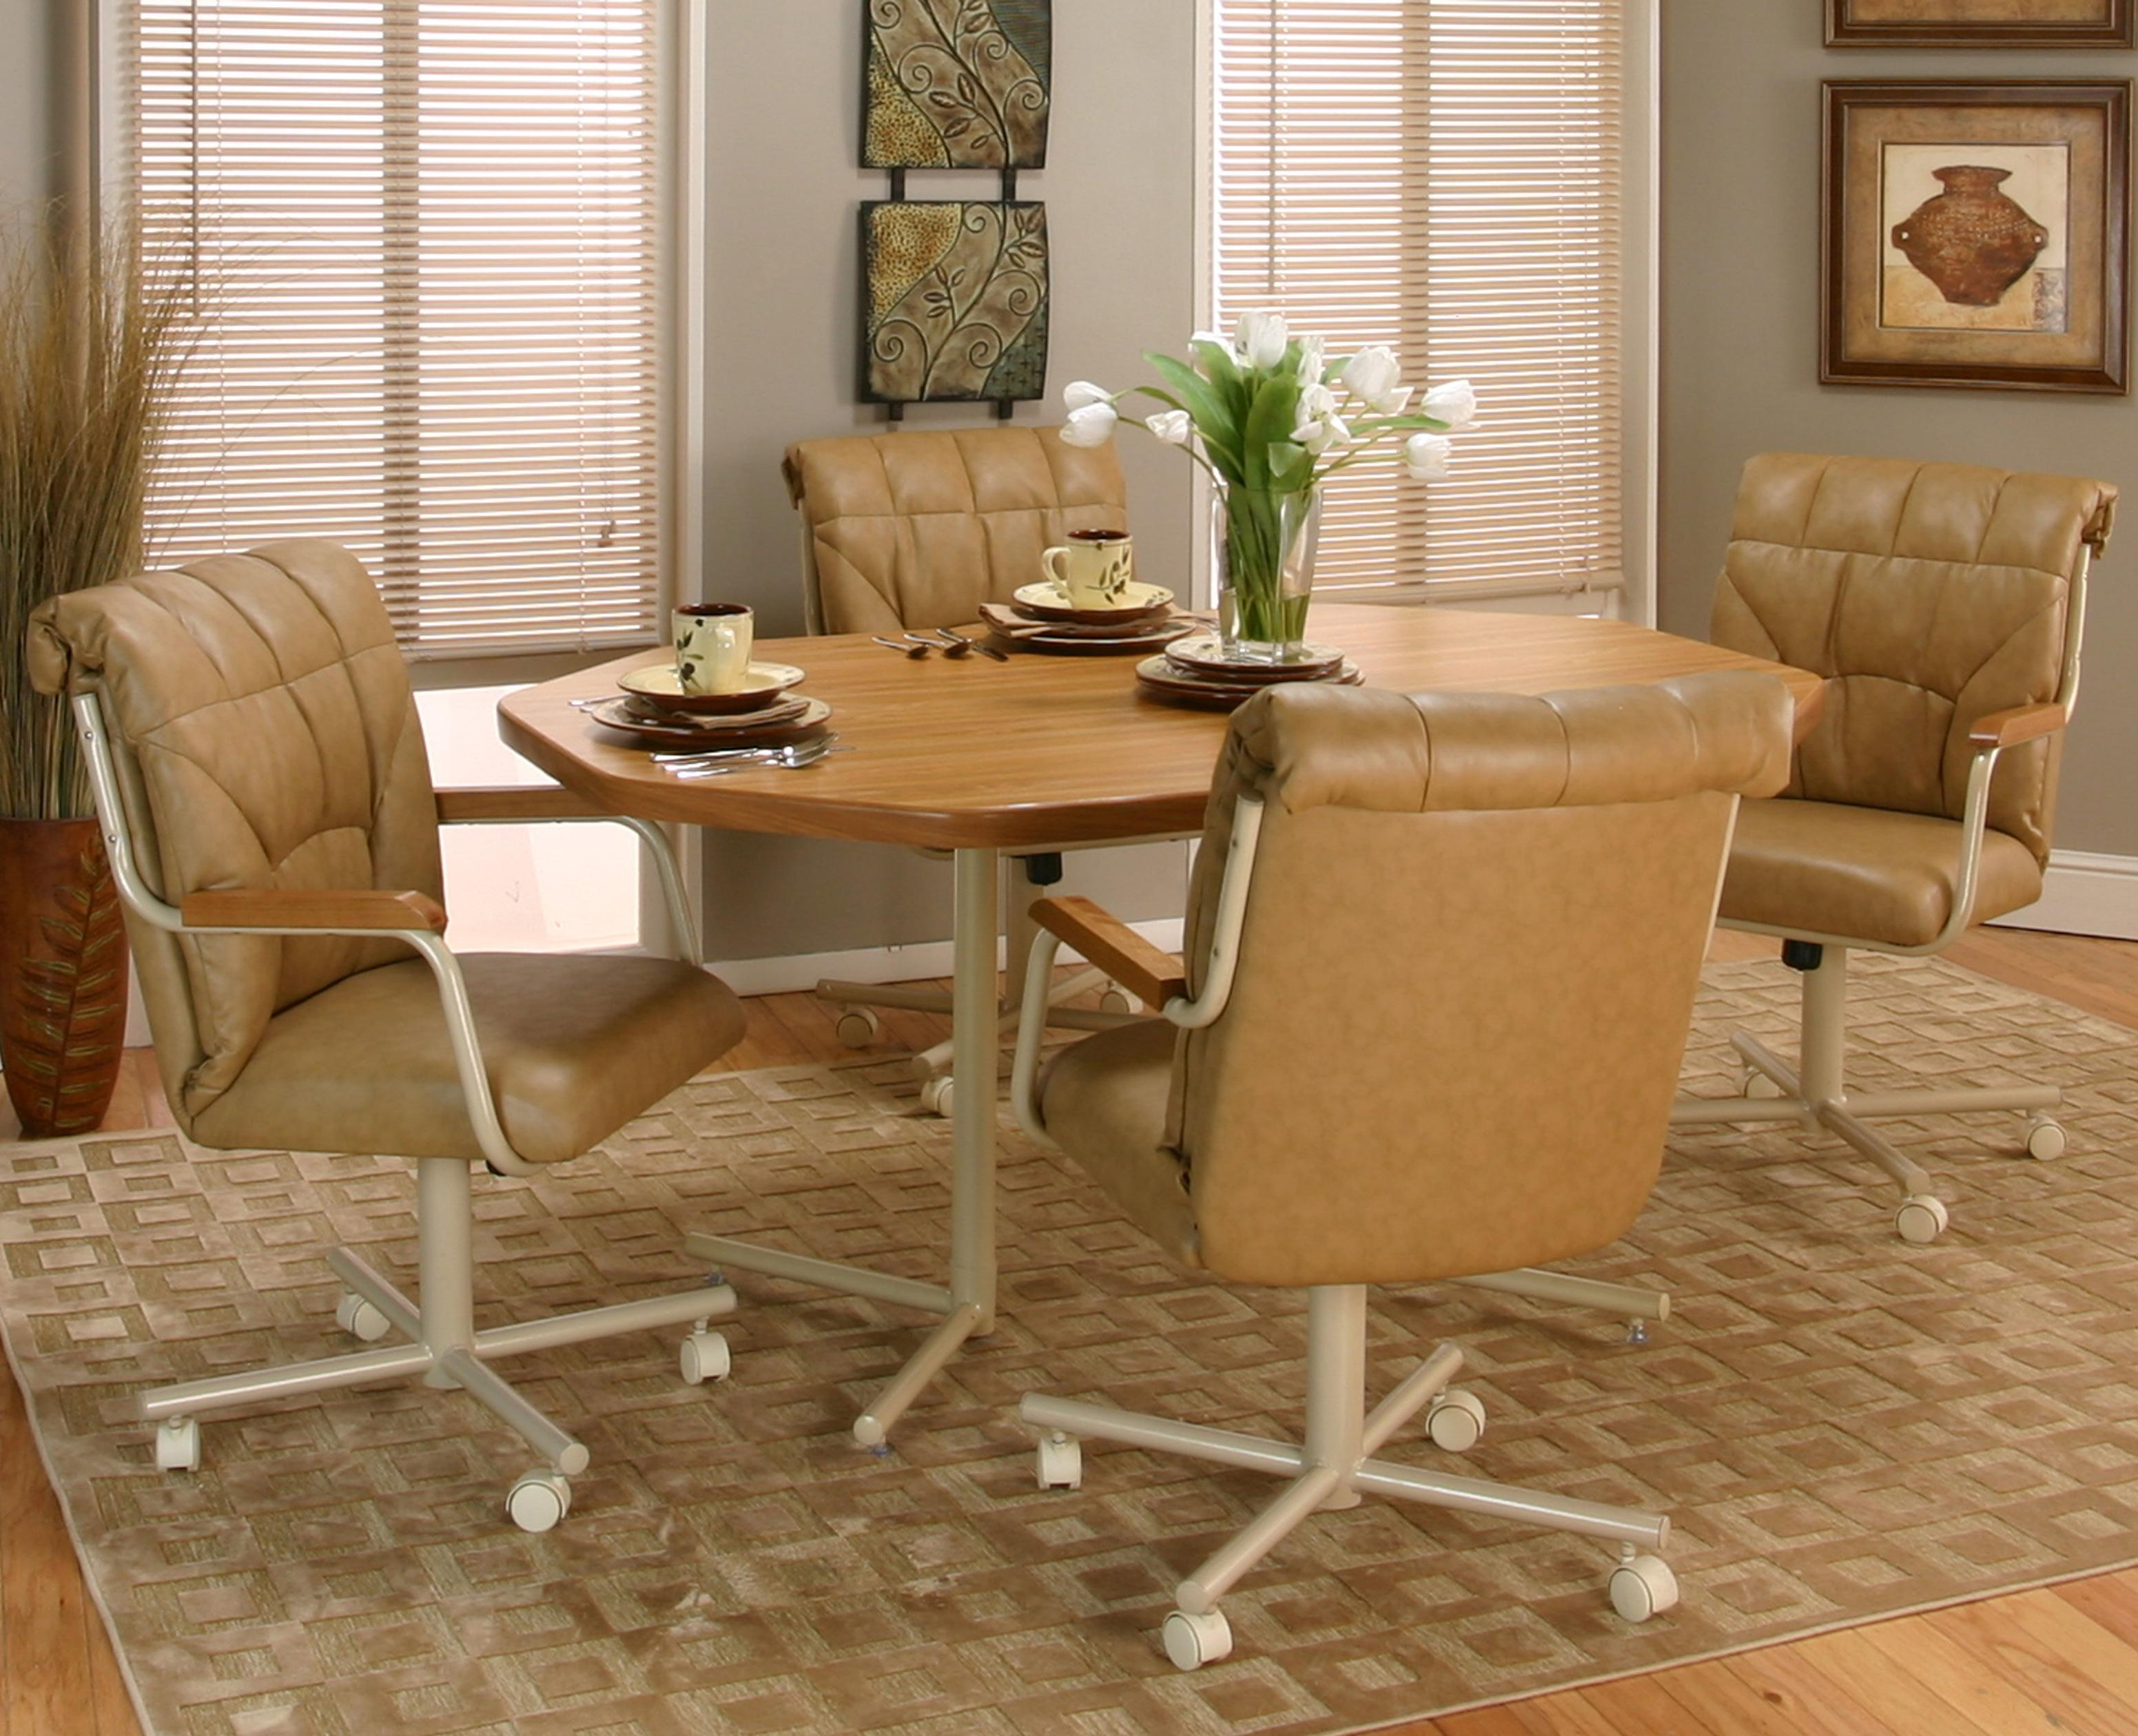 Dining Room Chairs With Casters And Arms 225 Caster Chair Swivel And Tilt Gas Lift 27900